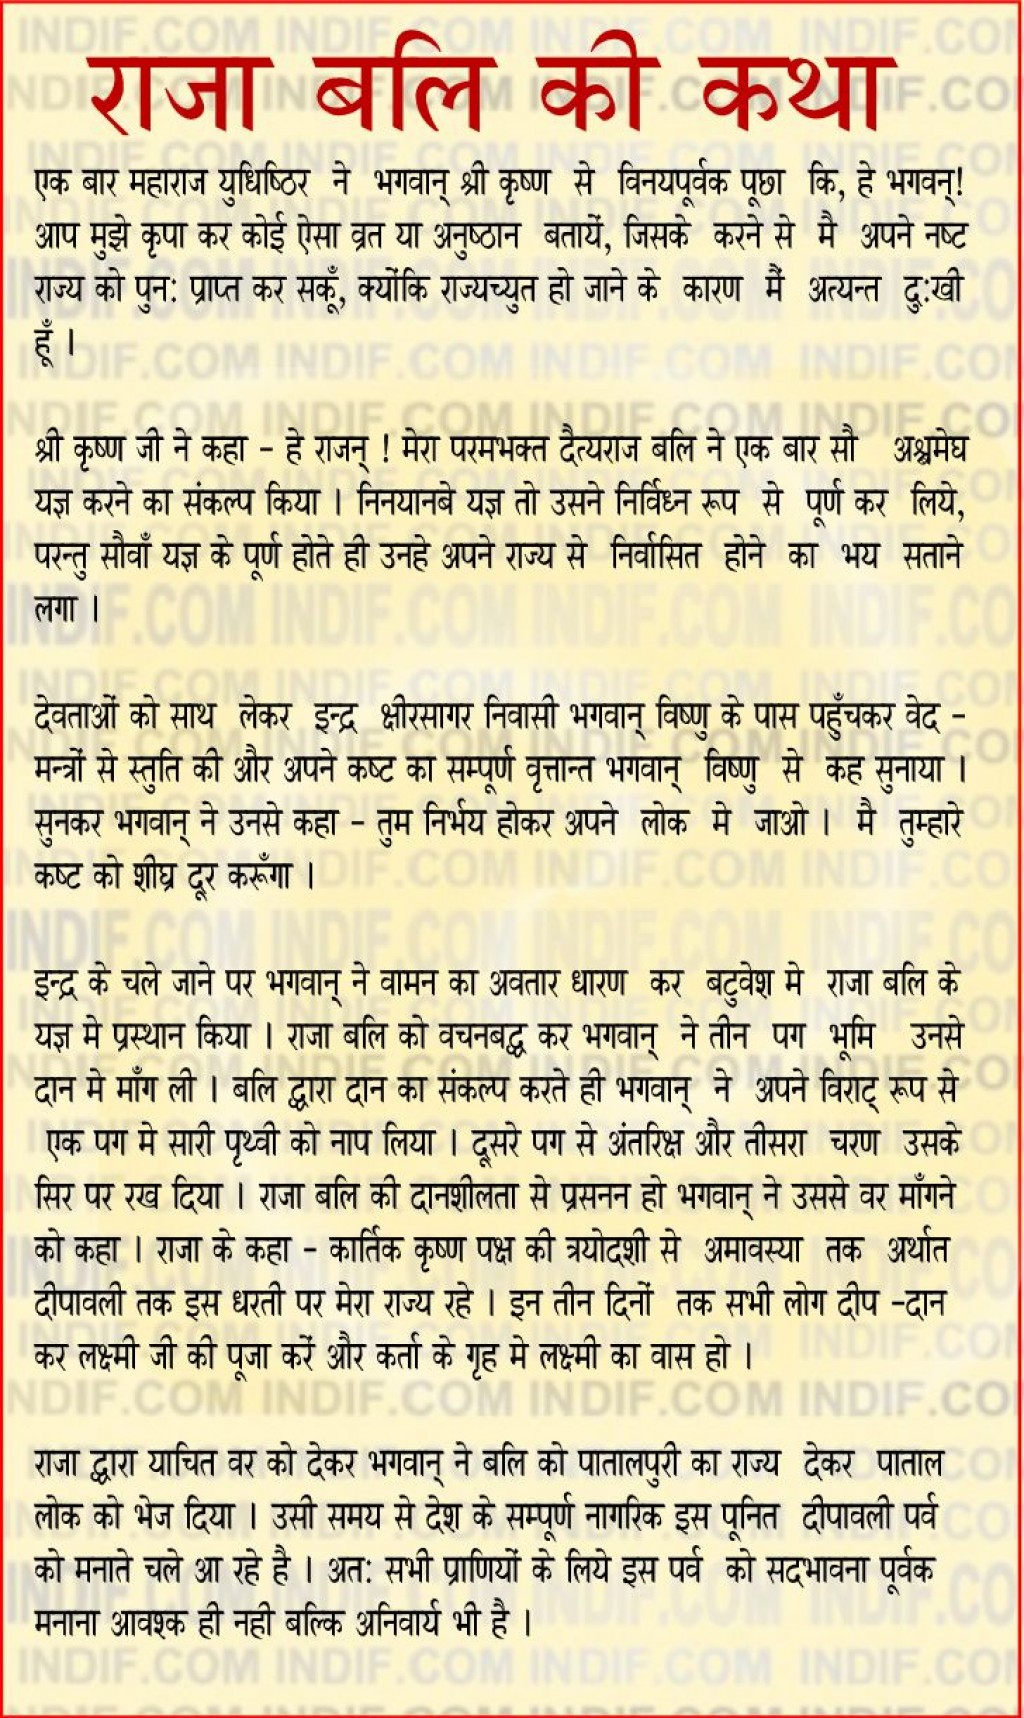 008 Essay Example For Diwali In Hindi Katha Fantastic On 50 Words Class Short 3 Large